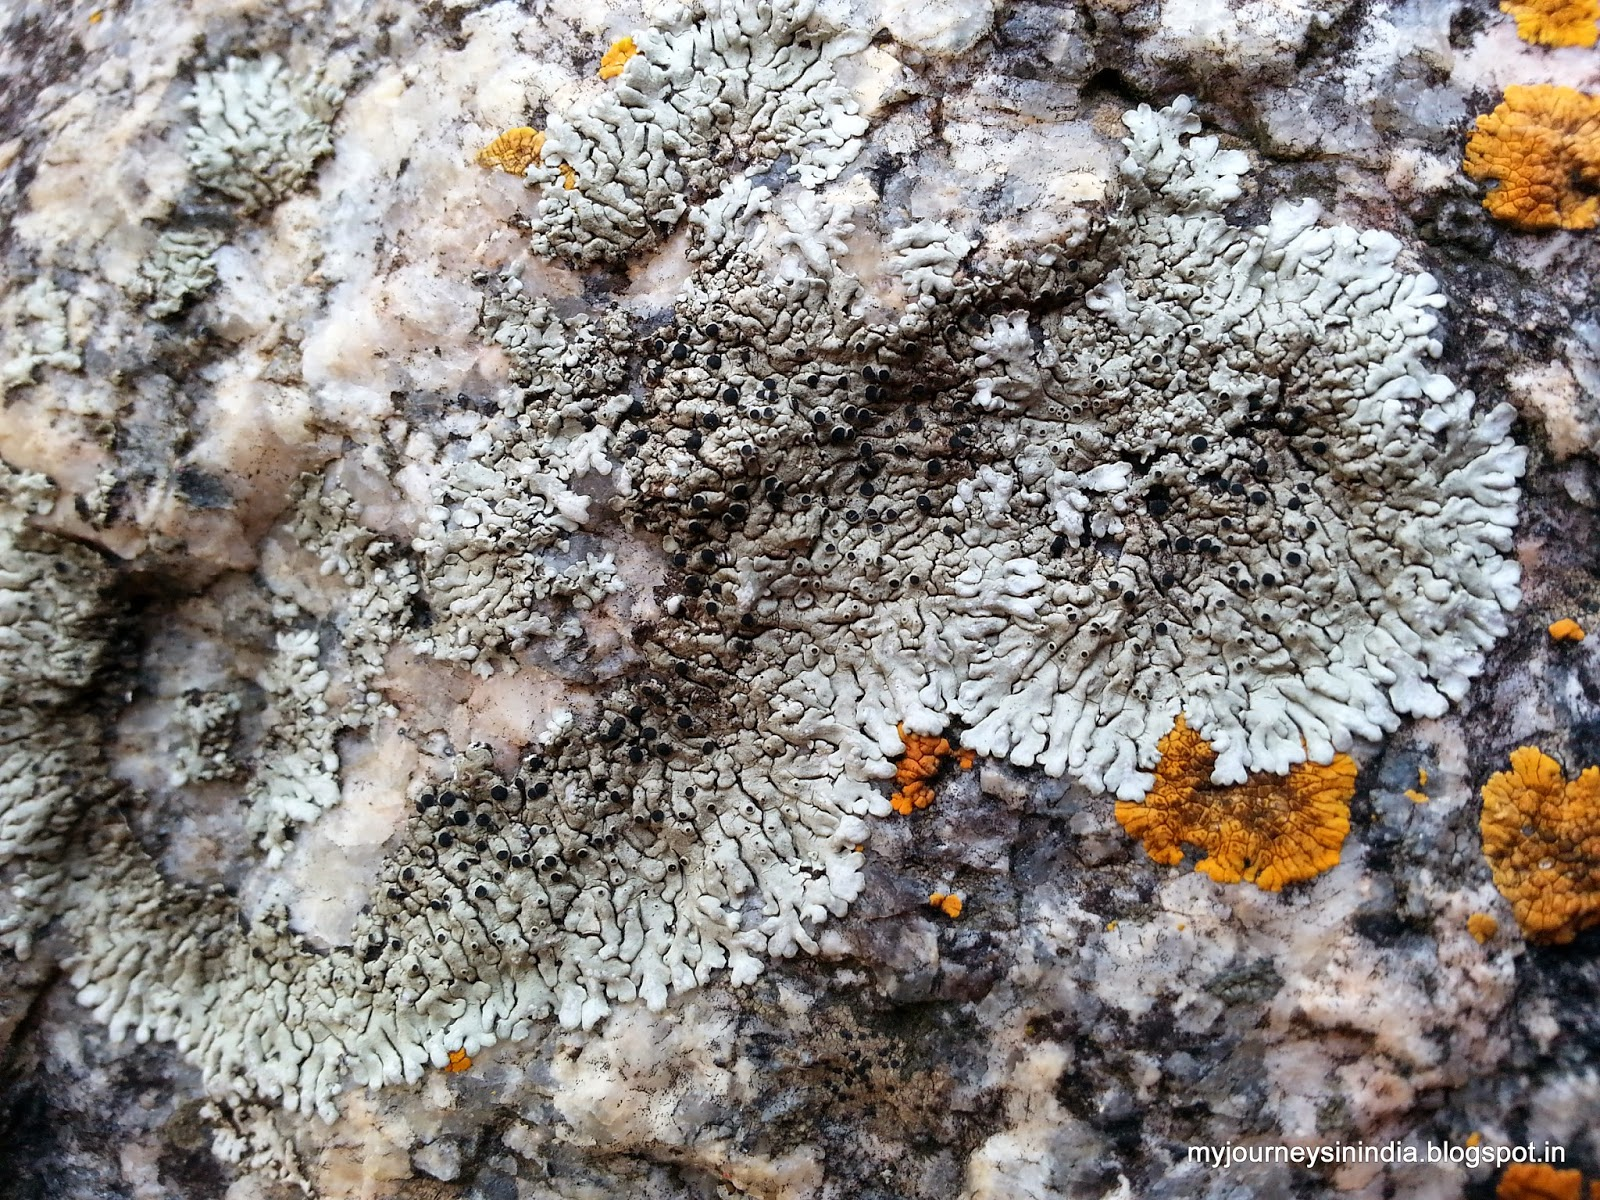 Lichens on rocks - Devarayanadurga